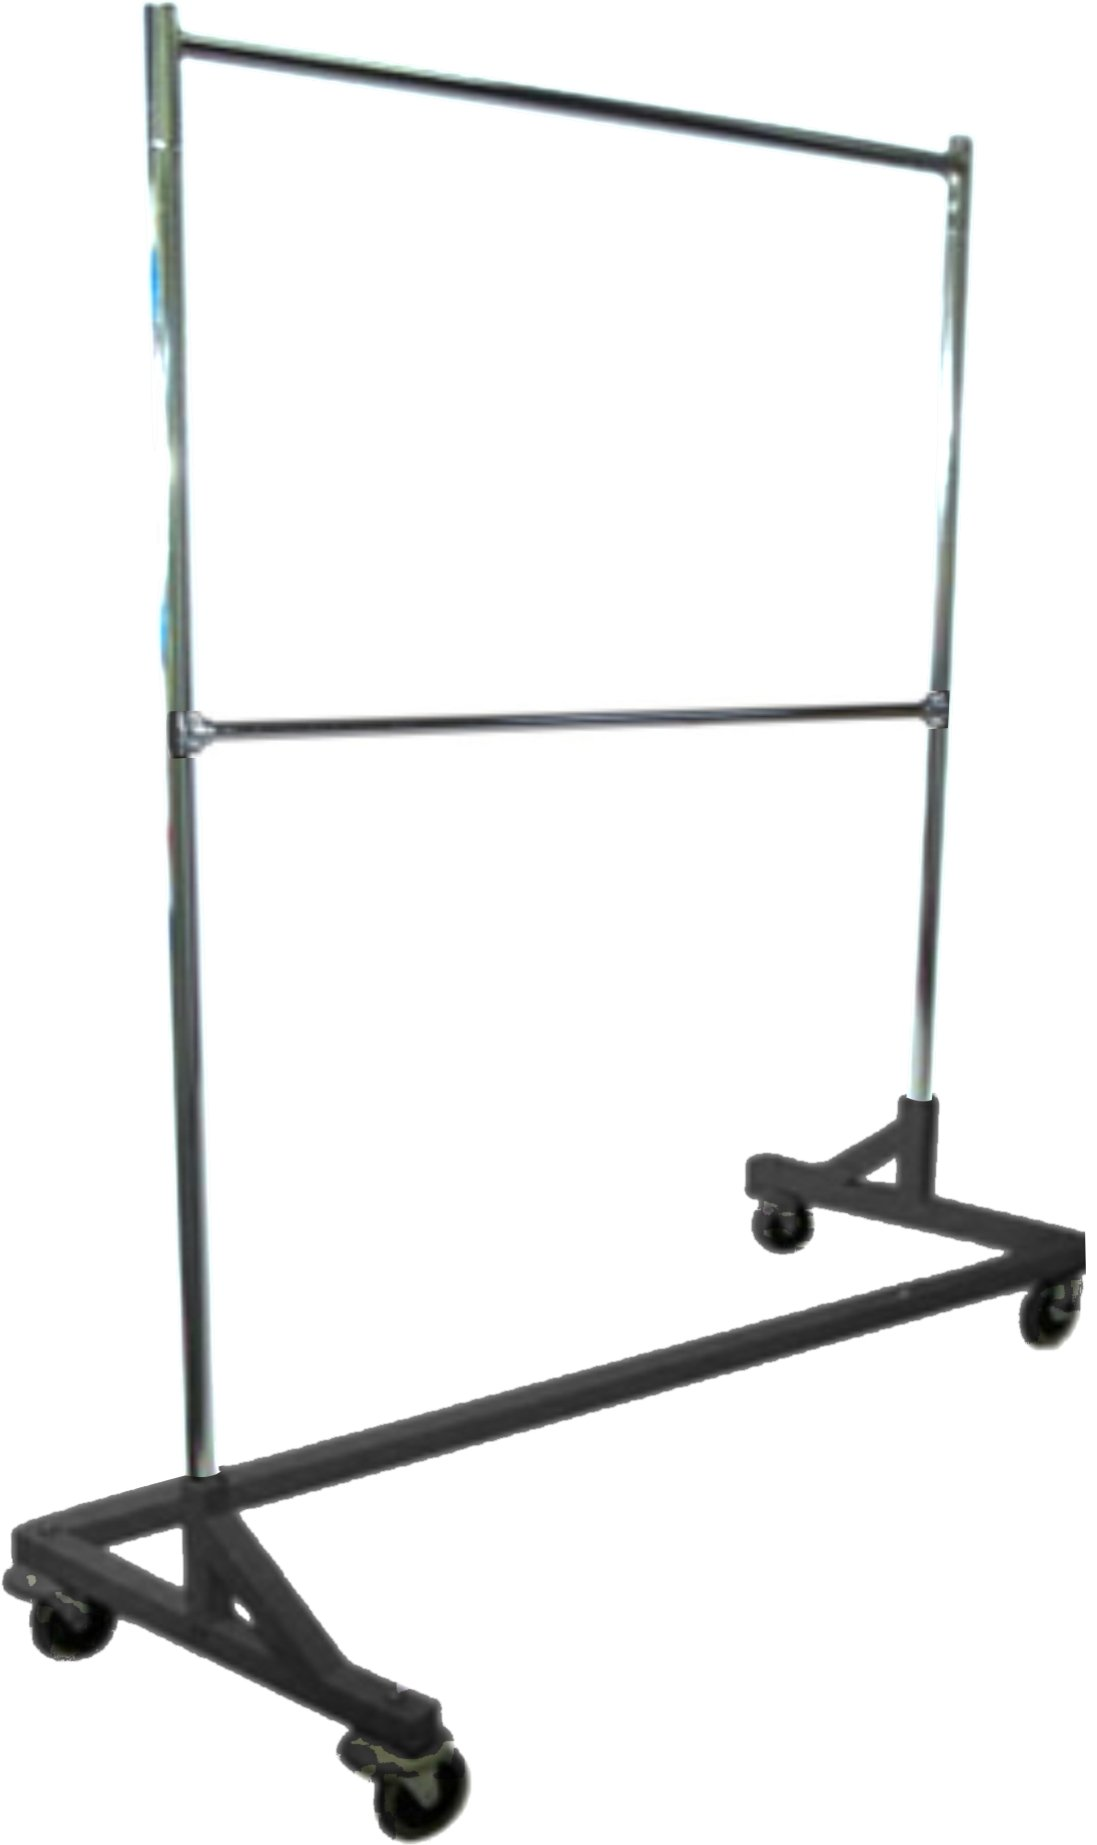 Only Hangers Deluxe Commercial Grade Rolling Z Garment Rack with Nesting Base, 400lb Capacity, Gloss Black GR600-EH 63'' Length with Add-On Extra Double Rail, Adjustable Height Chrome Uprights